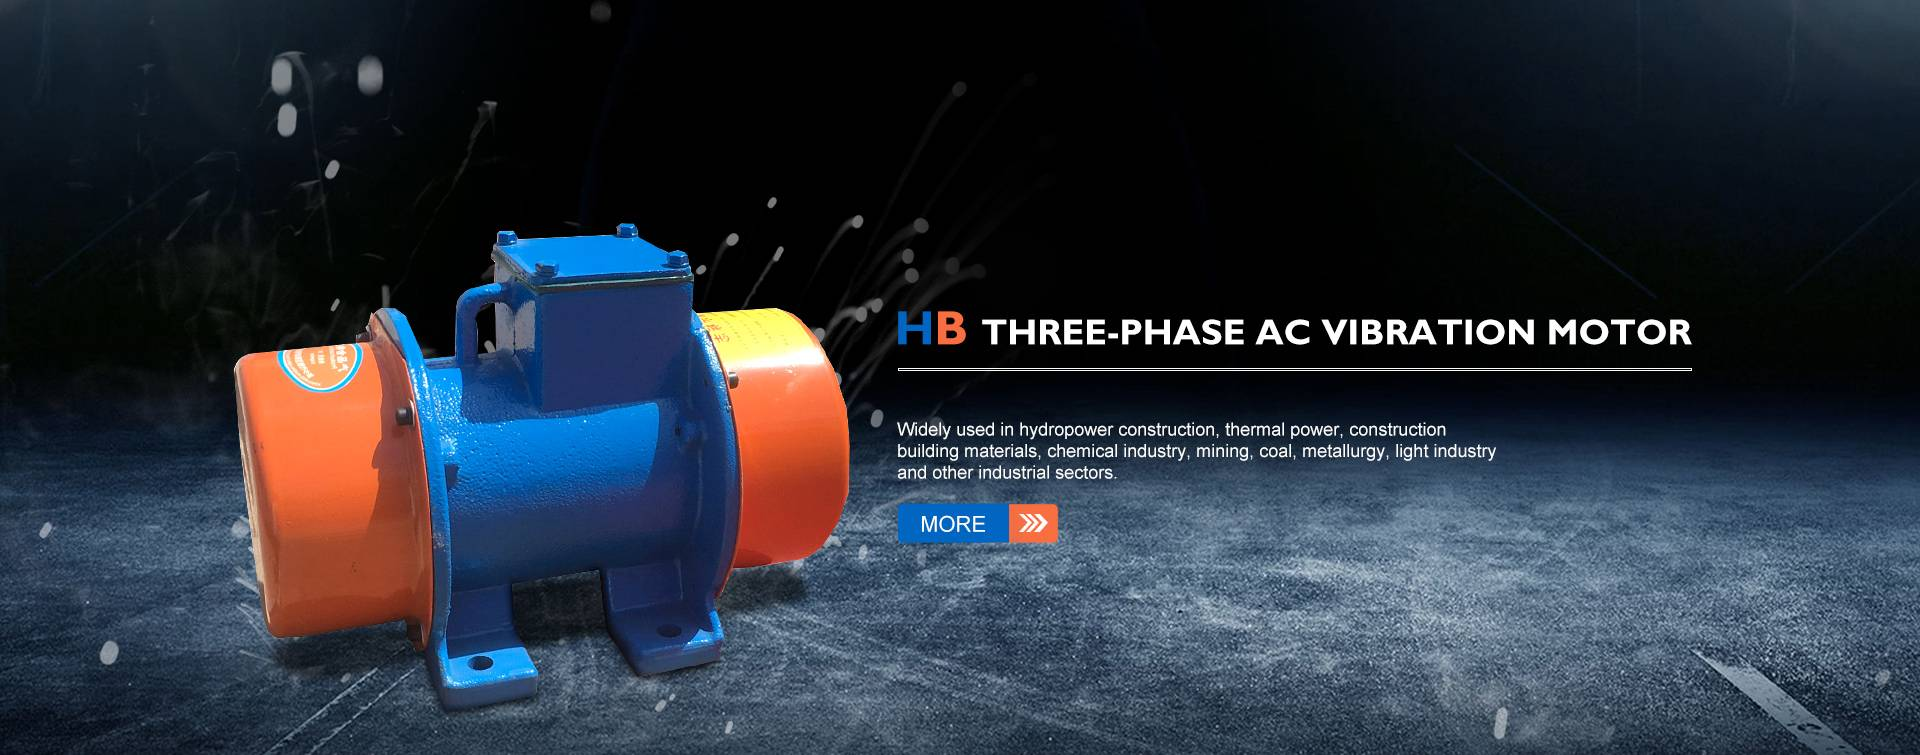 HB Three-phase AC Vibration Motor